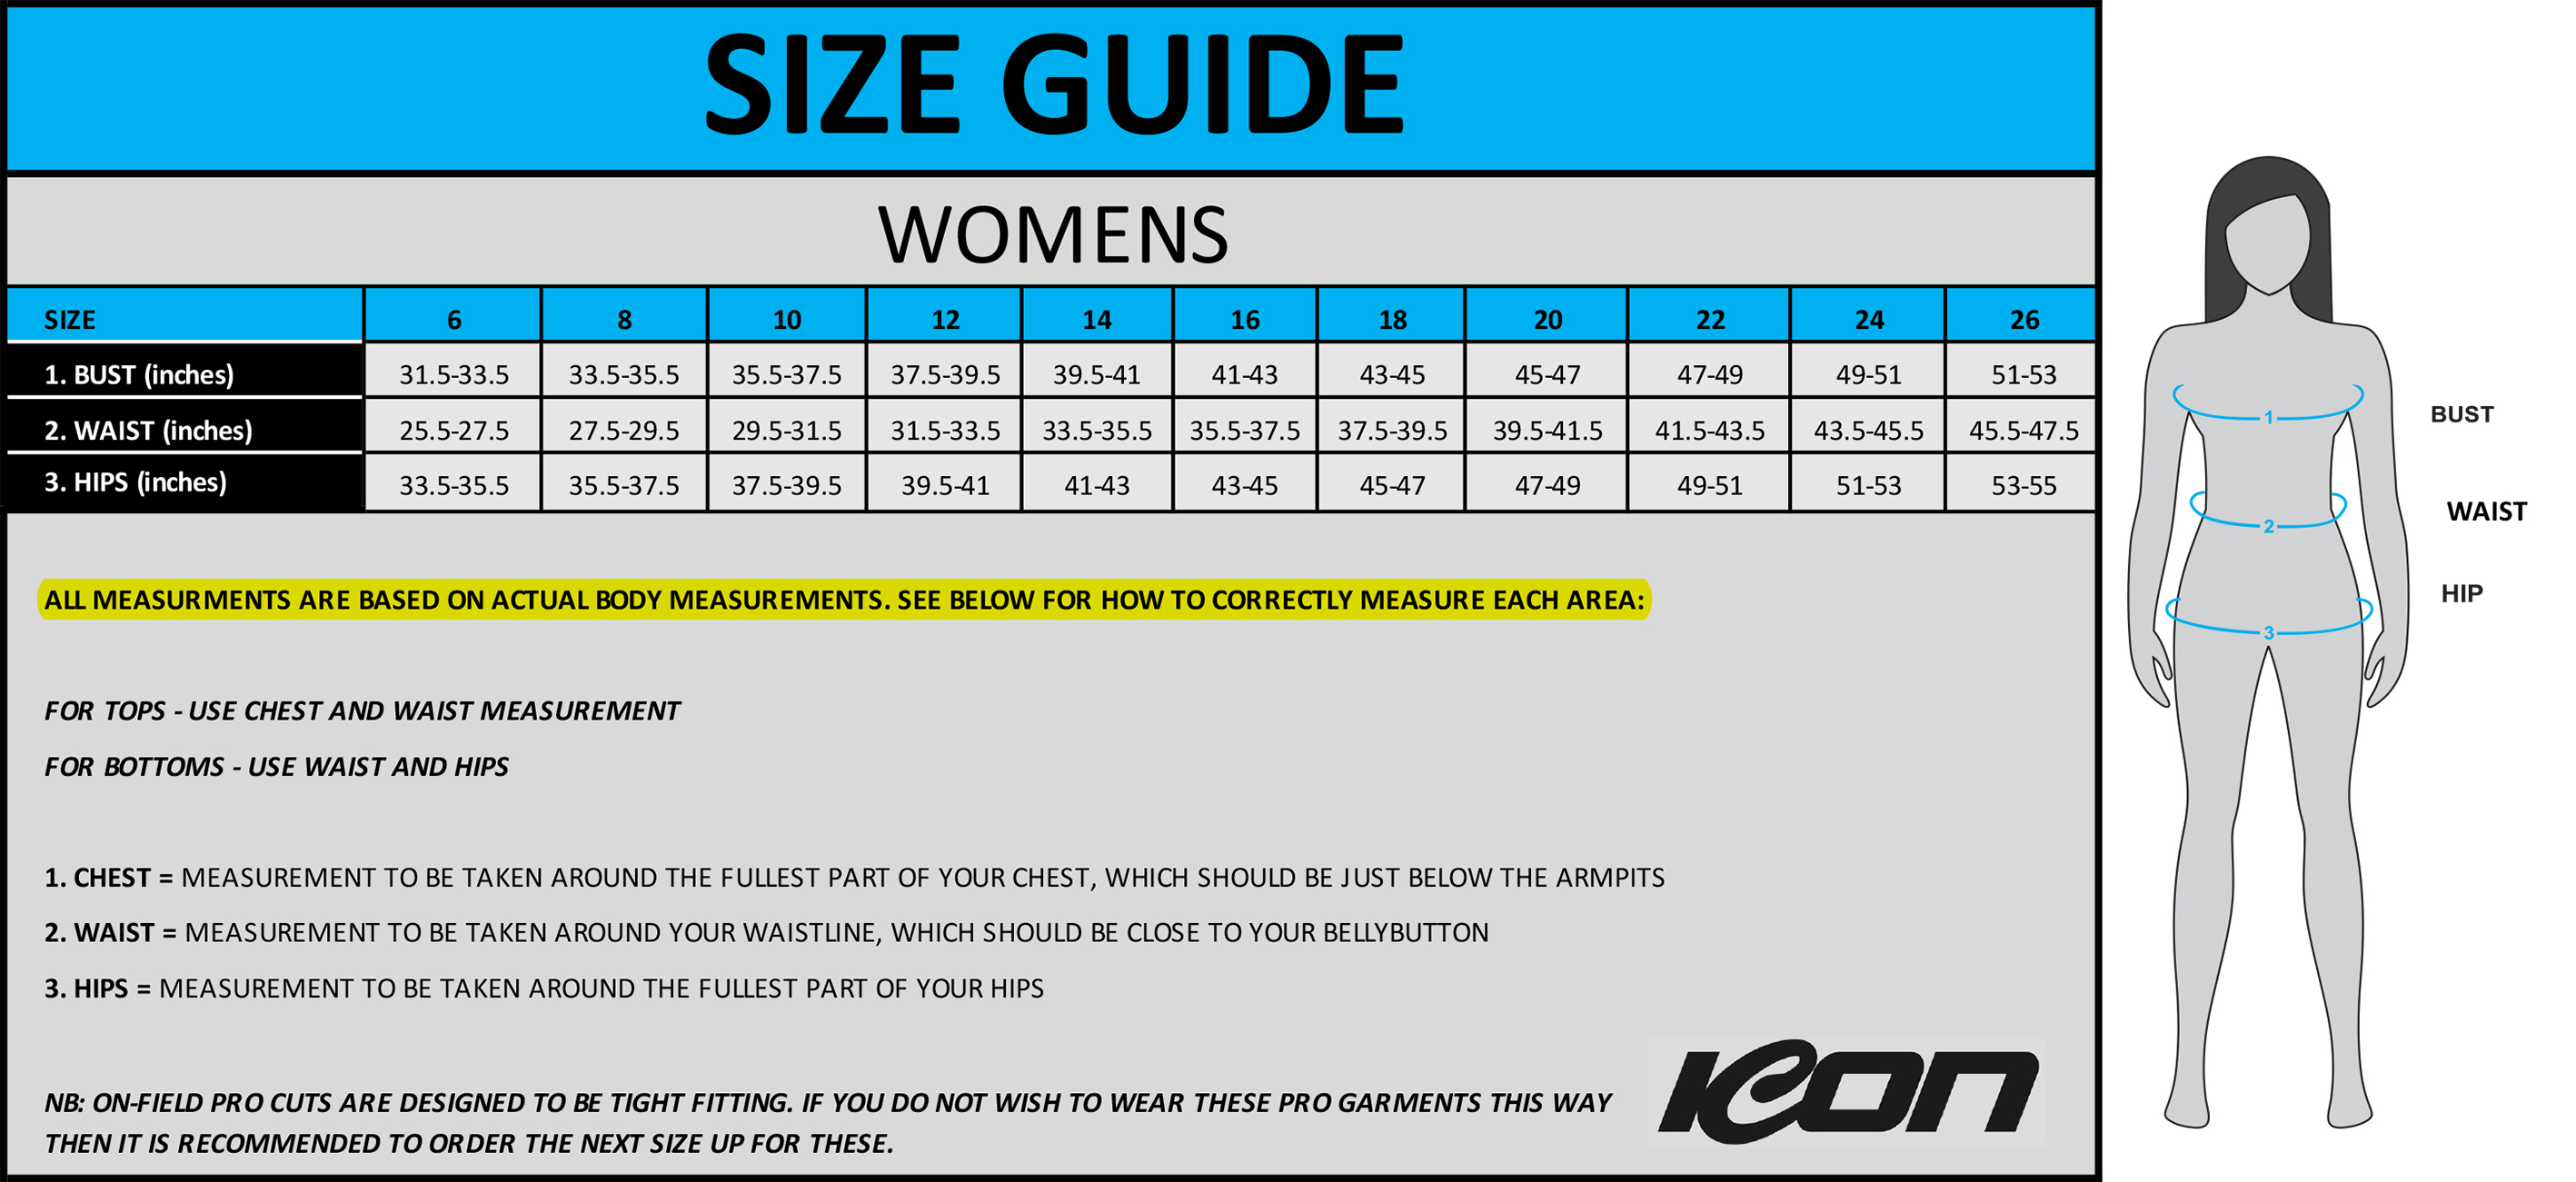 WOMENS SIZE GUIDE ICON UK.jpg